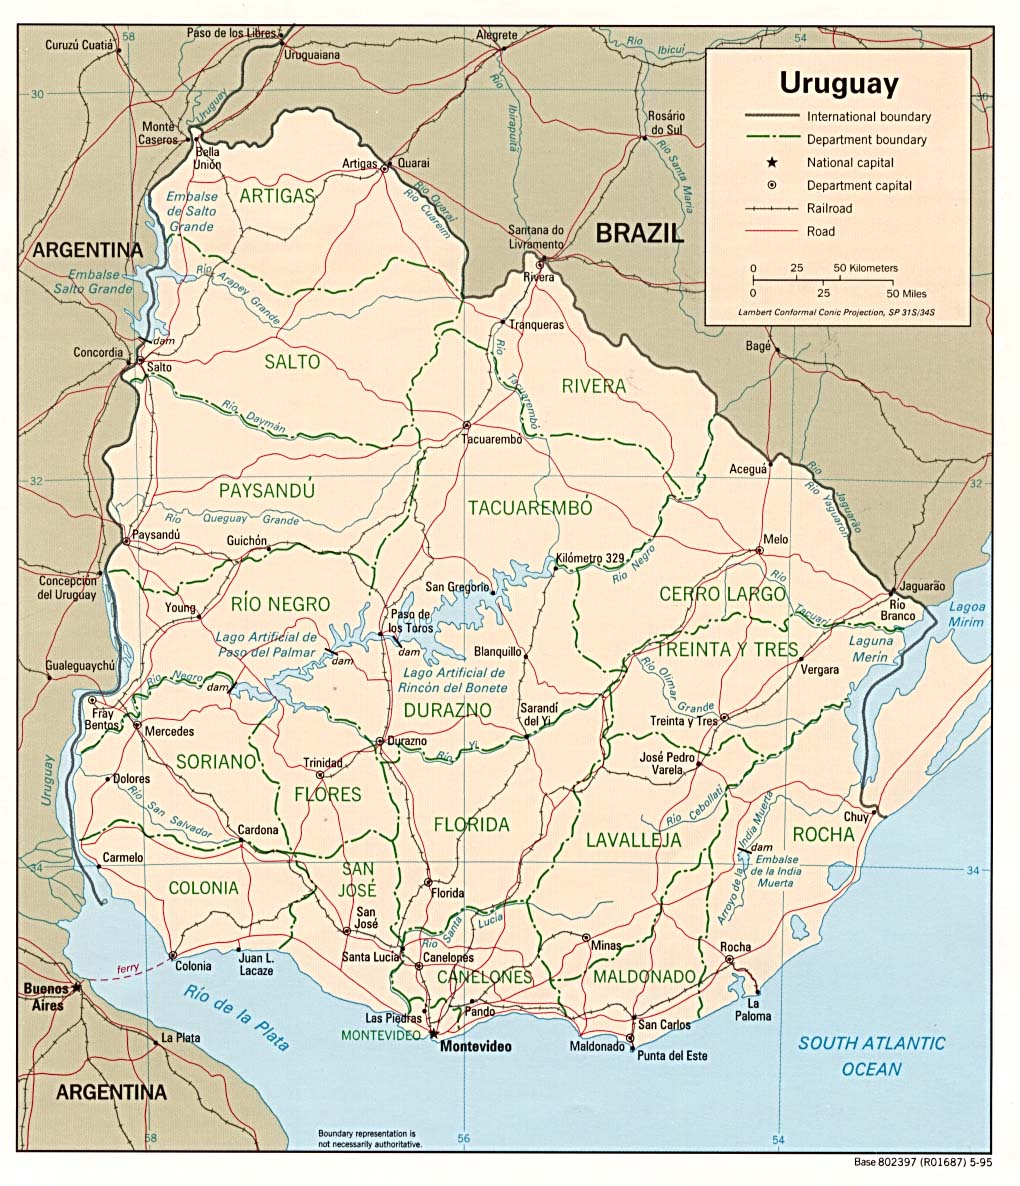 Uruguay Karte.Map Of Uruguay Political Map Worldofmaps Net Online Maps And